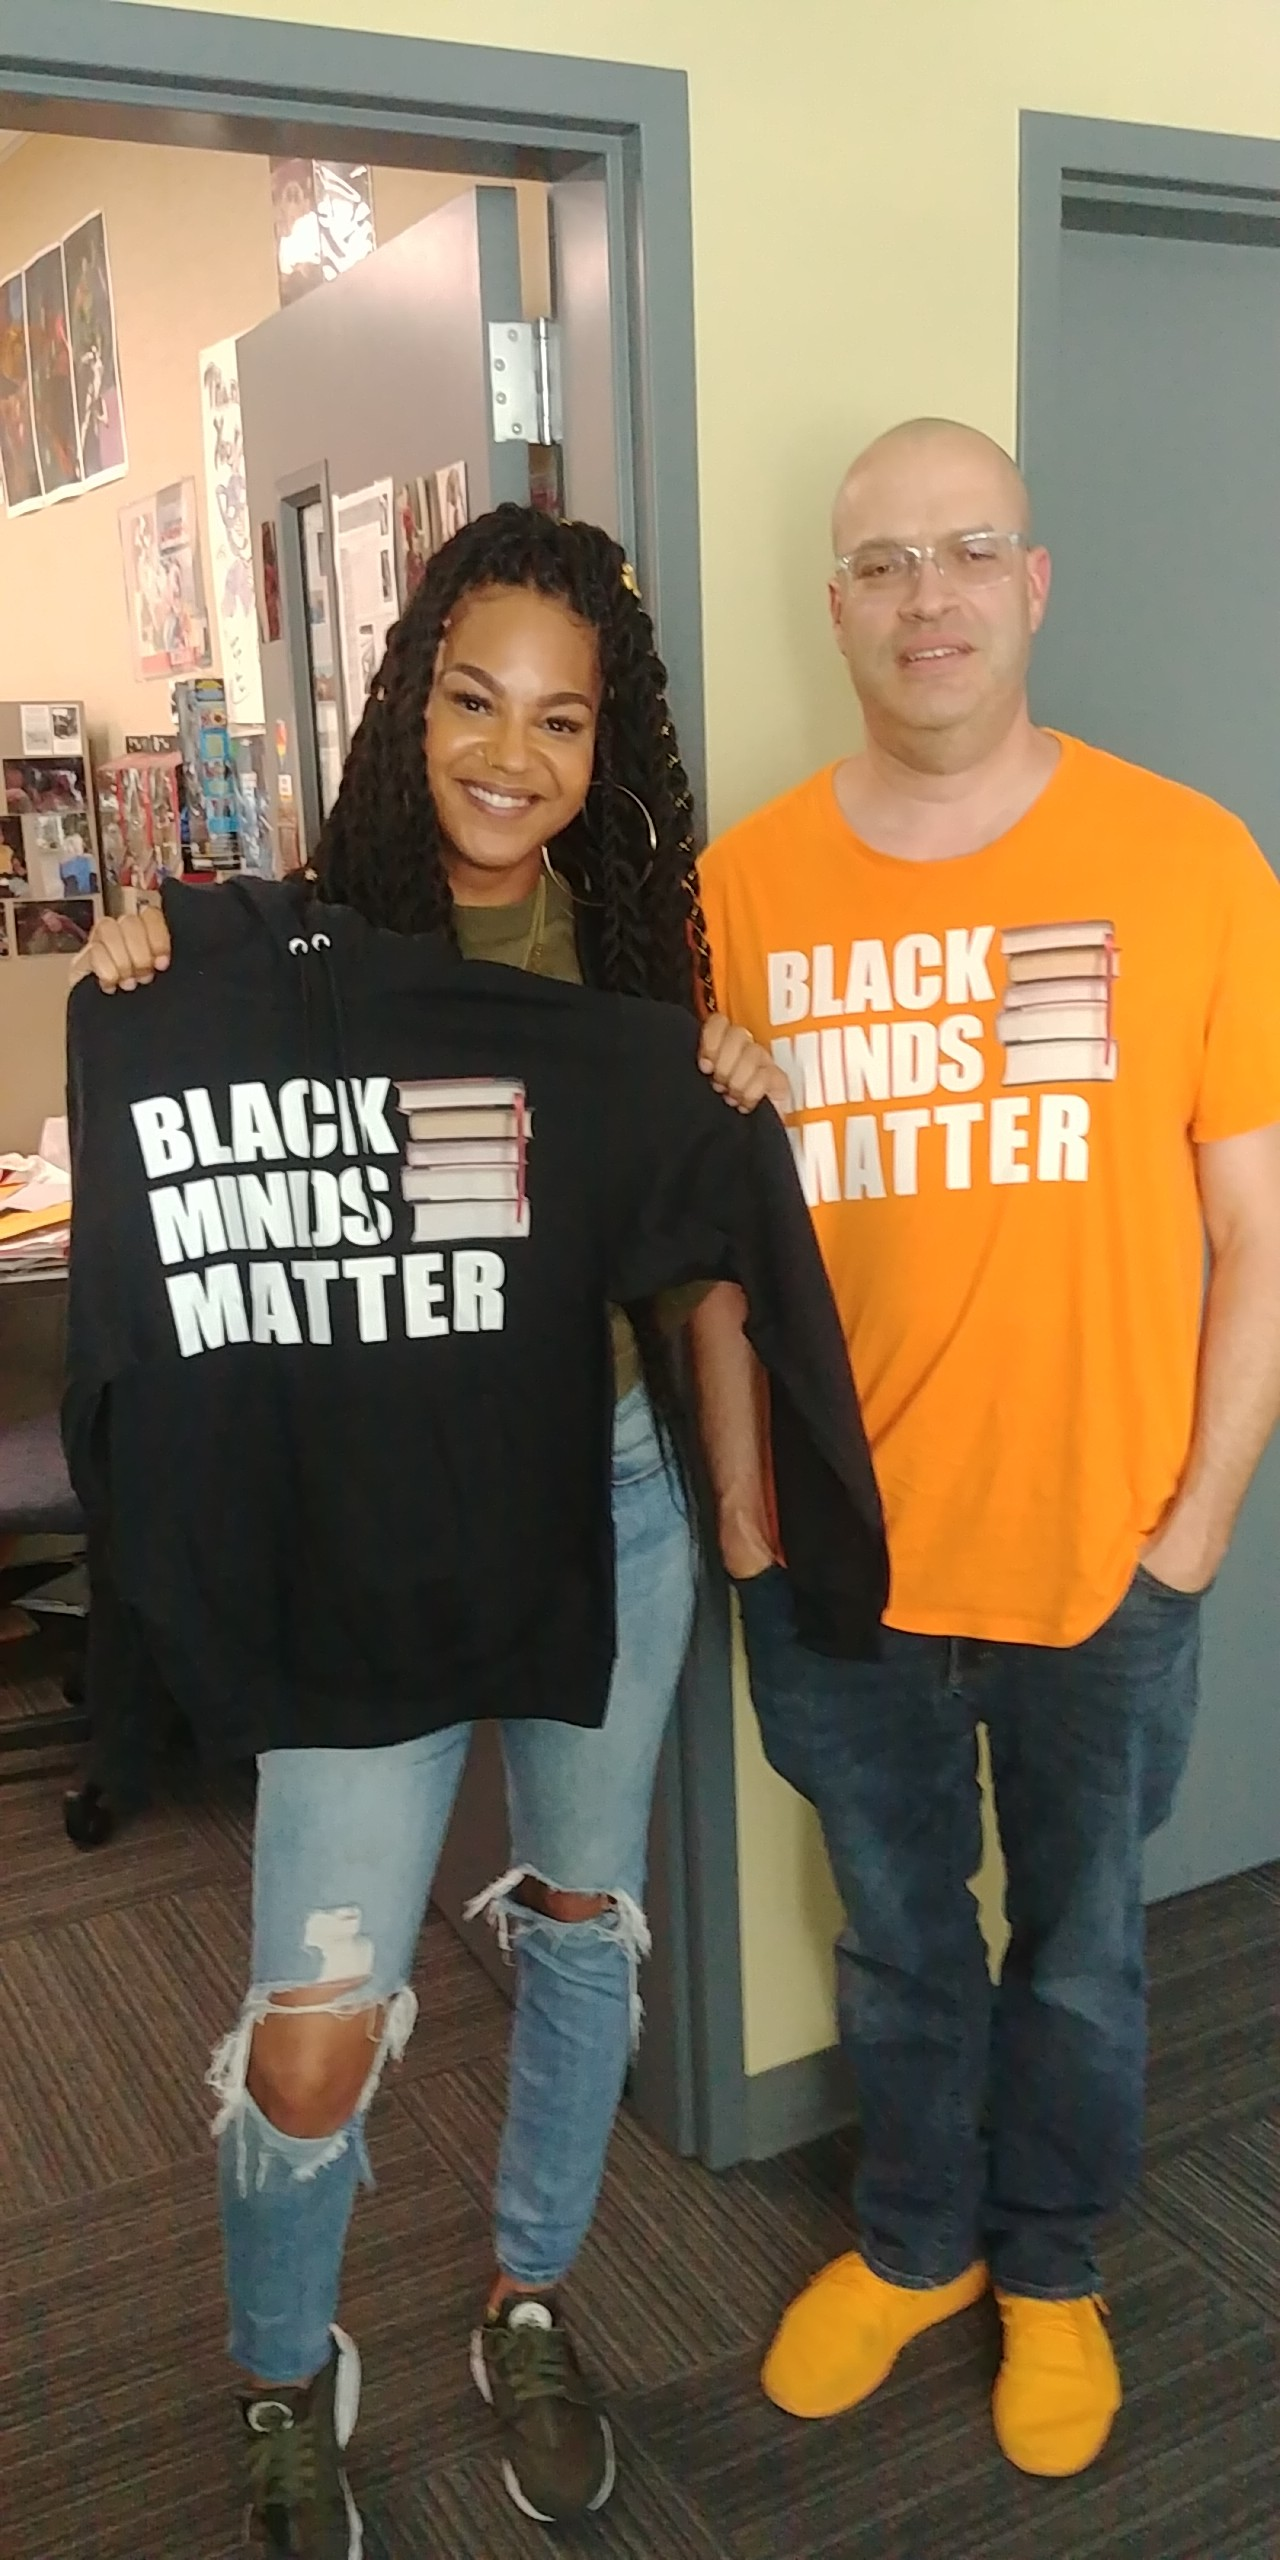 ARC student Grace and librarian David in the ARC Library wearing black minds matter shirts.